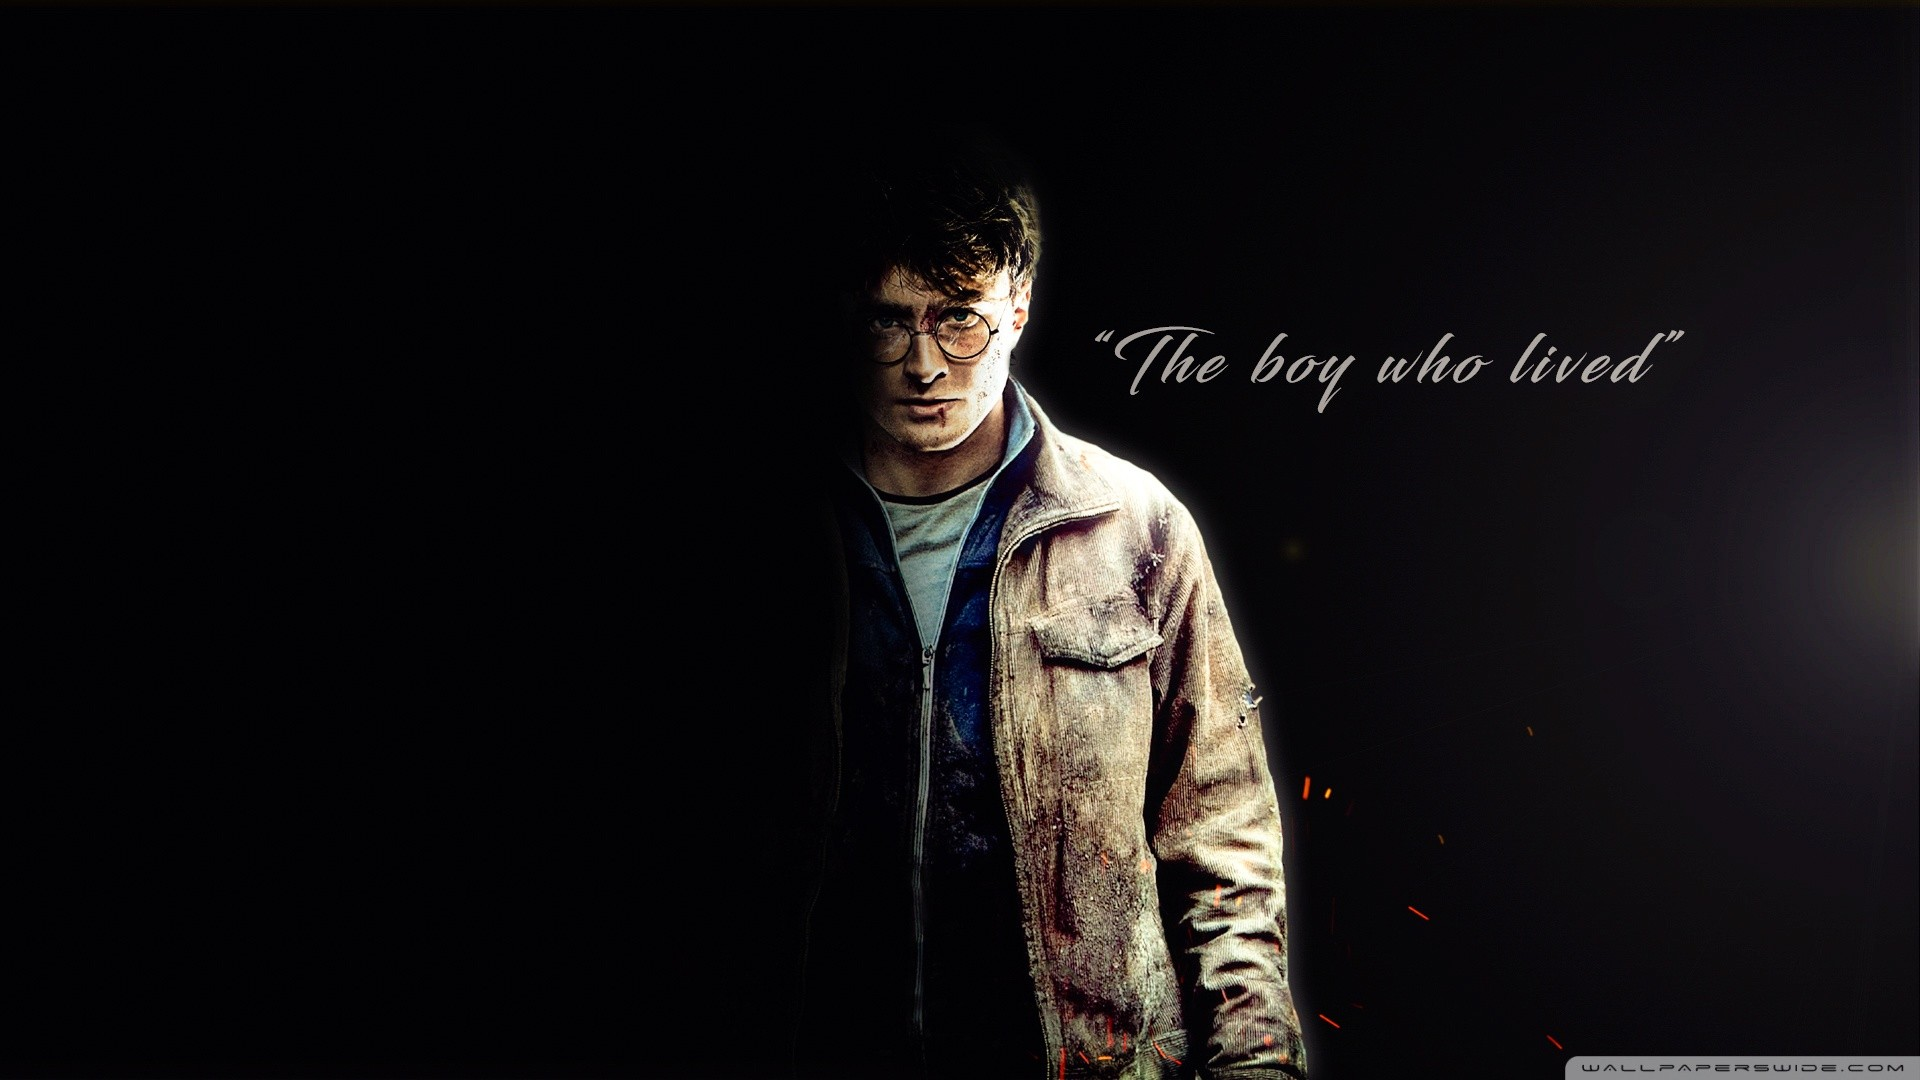 Harry potter wallpaper download free amazing high - Harry potter images download ...